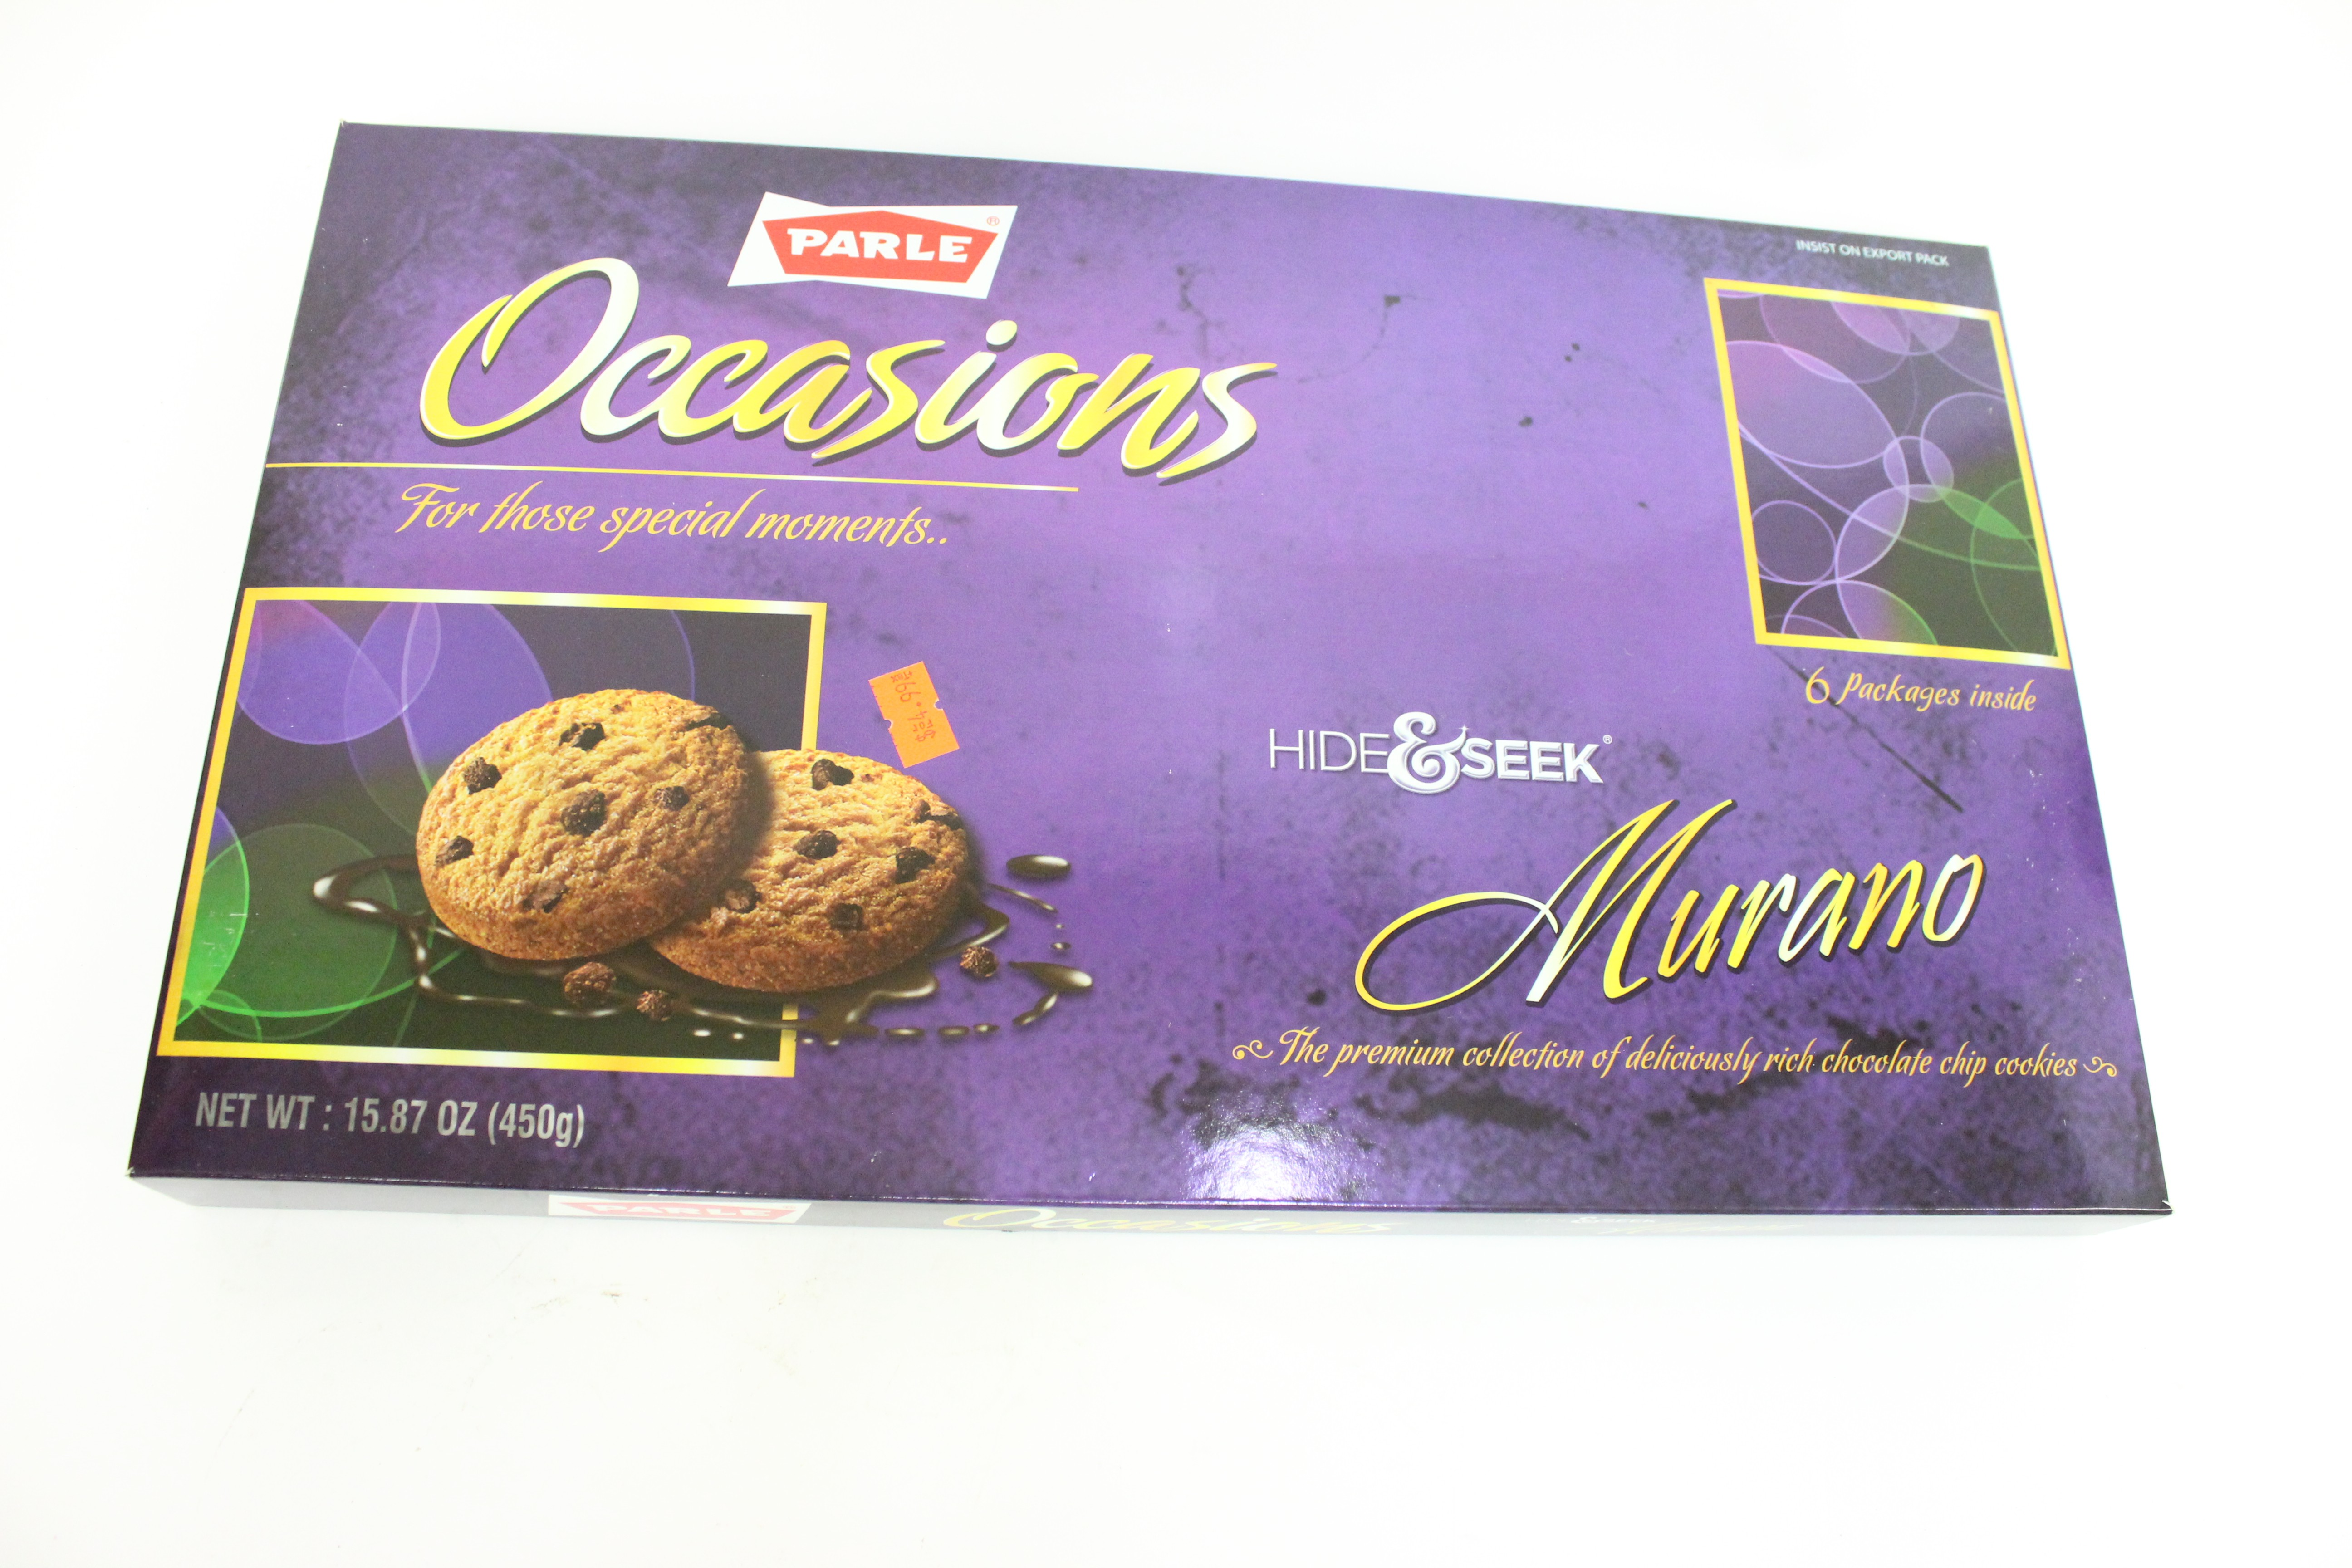 Parle Occasions Murano Chocolate Chip Cookies 6 Pack 15.87 oz